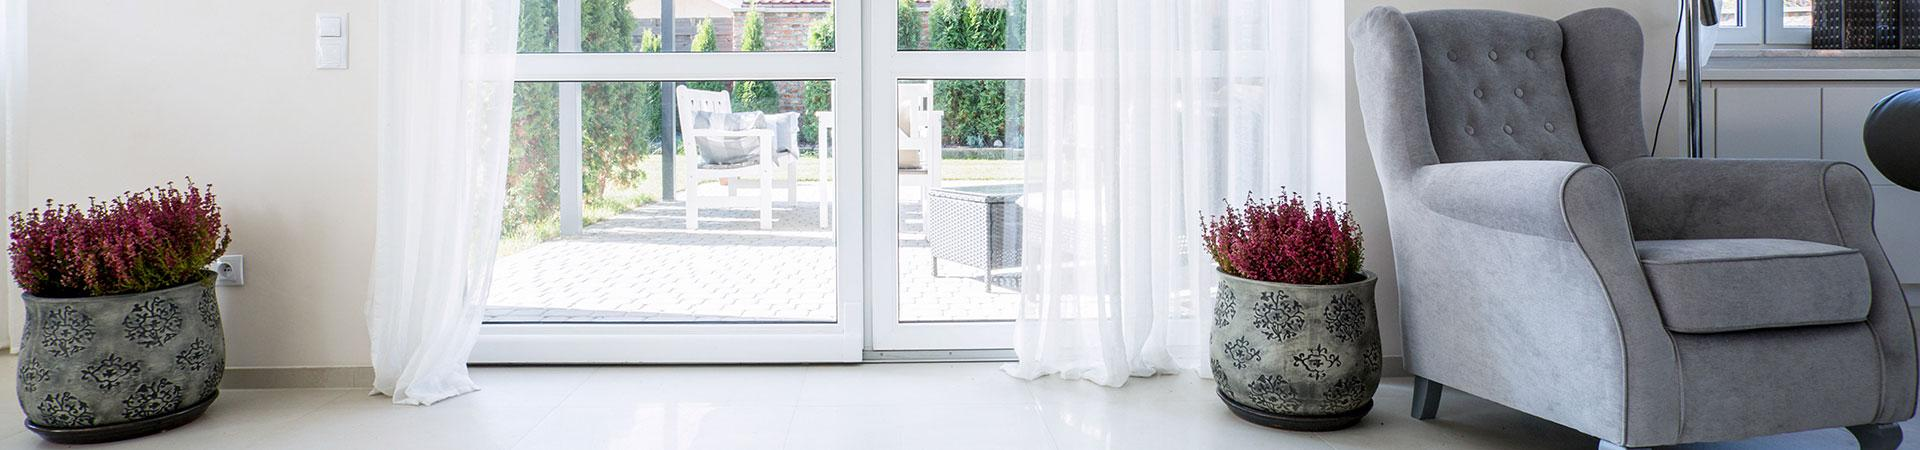 Double Hung Vinyl Replacement Windows In Raleigh